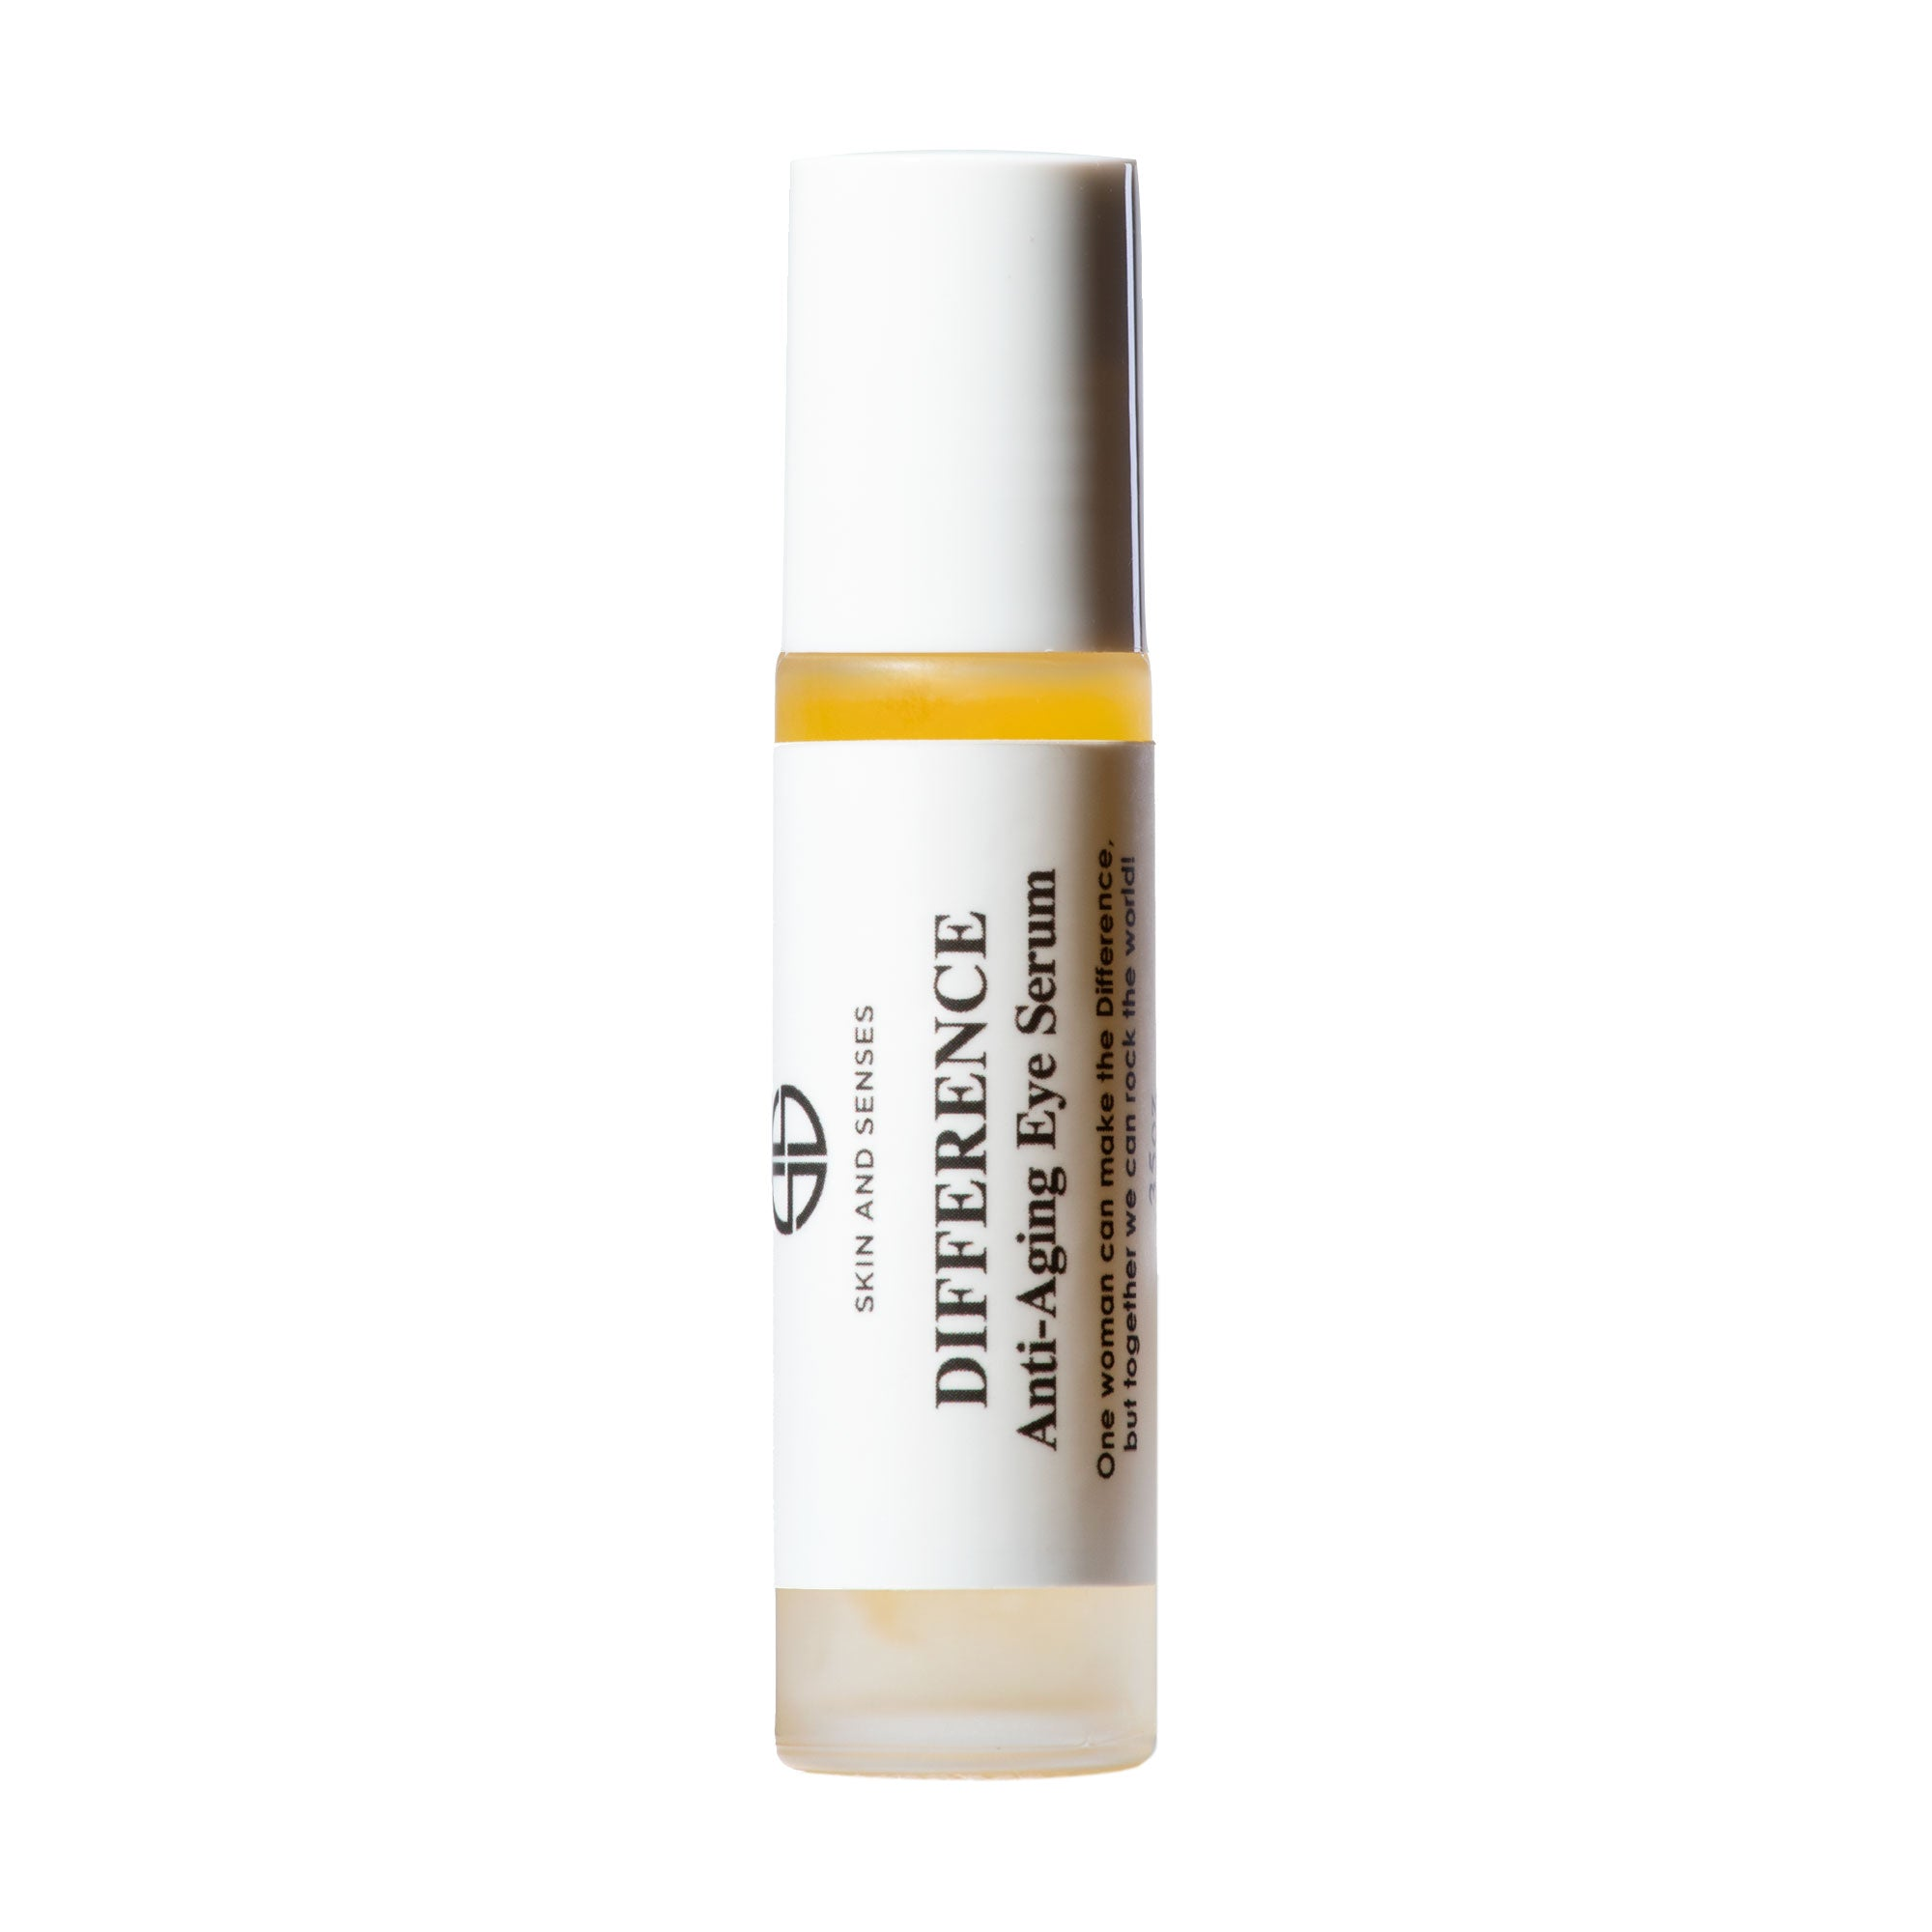 Vegan Anti-Aging Eye Oil